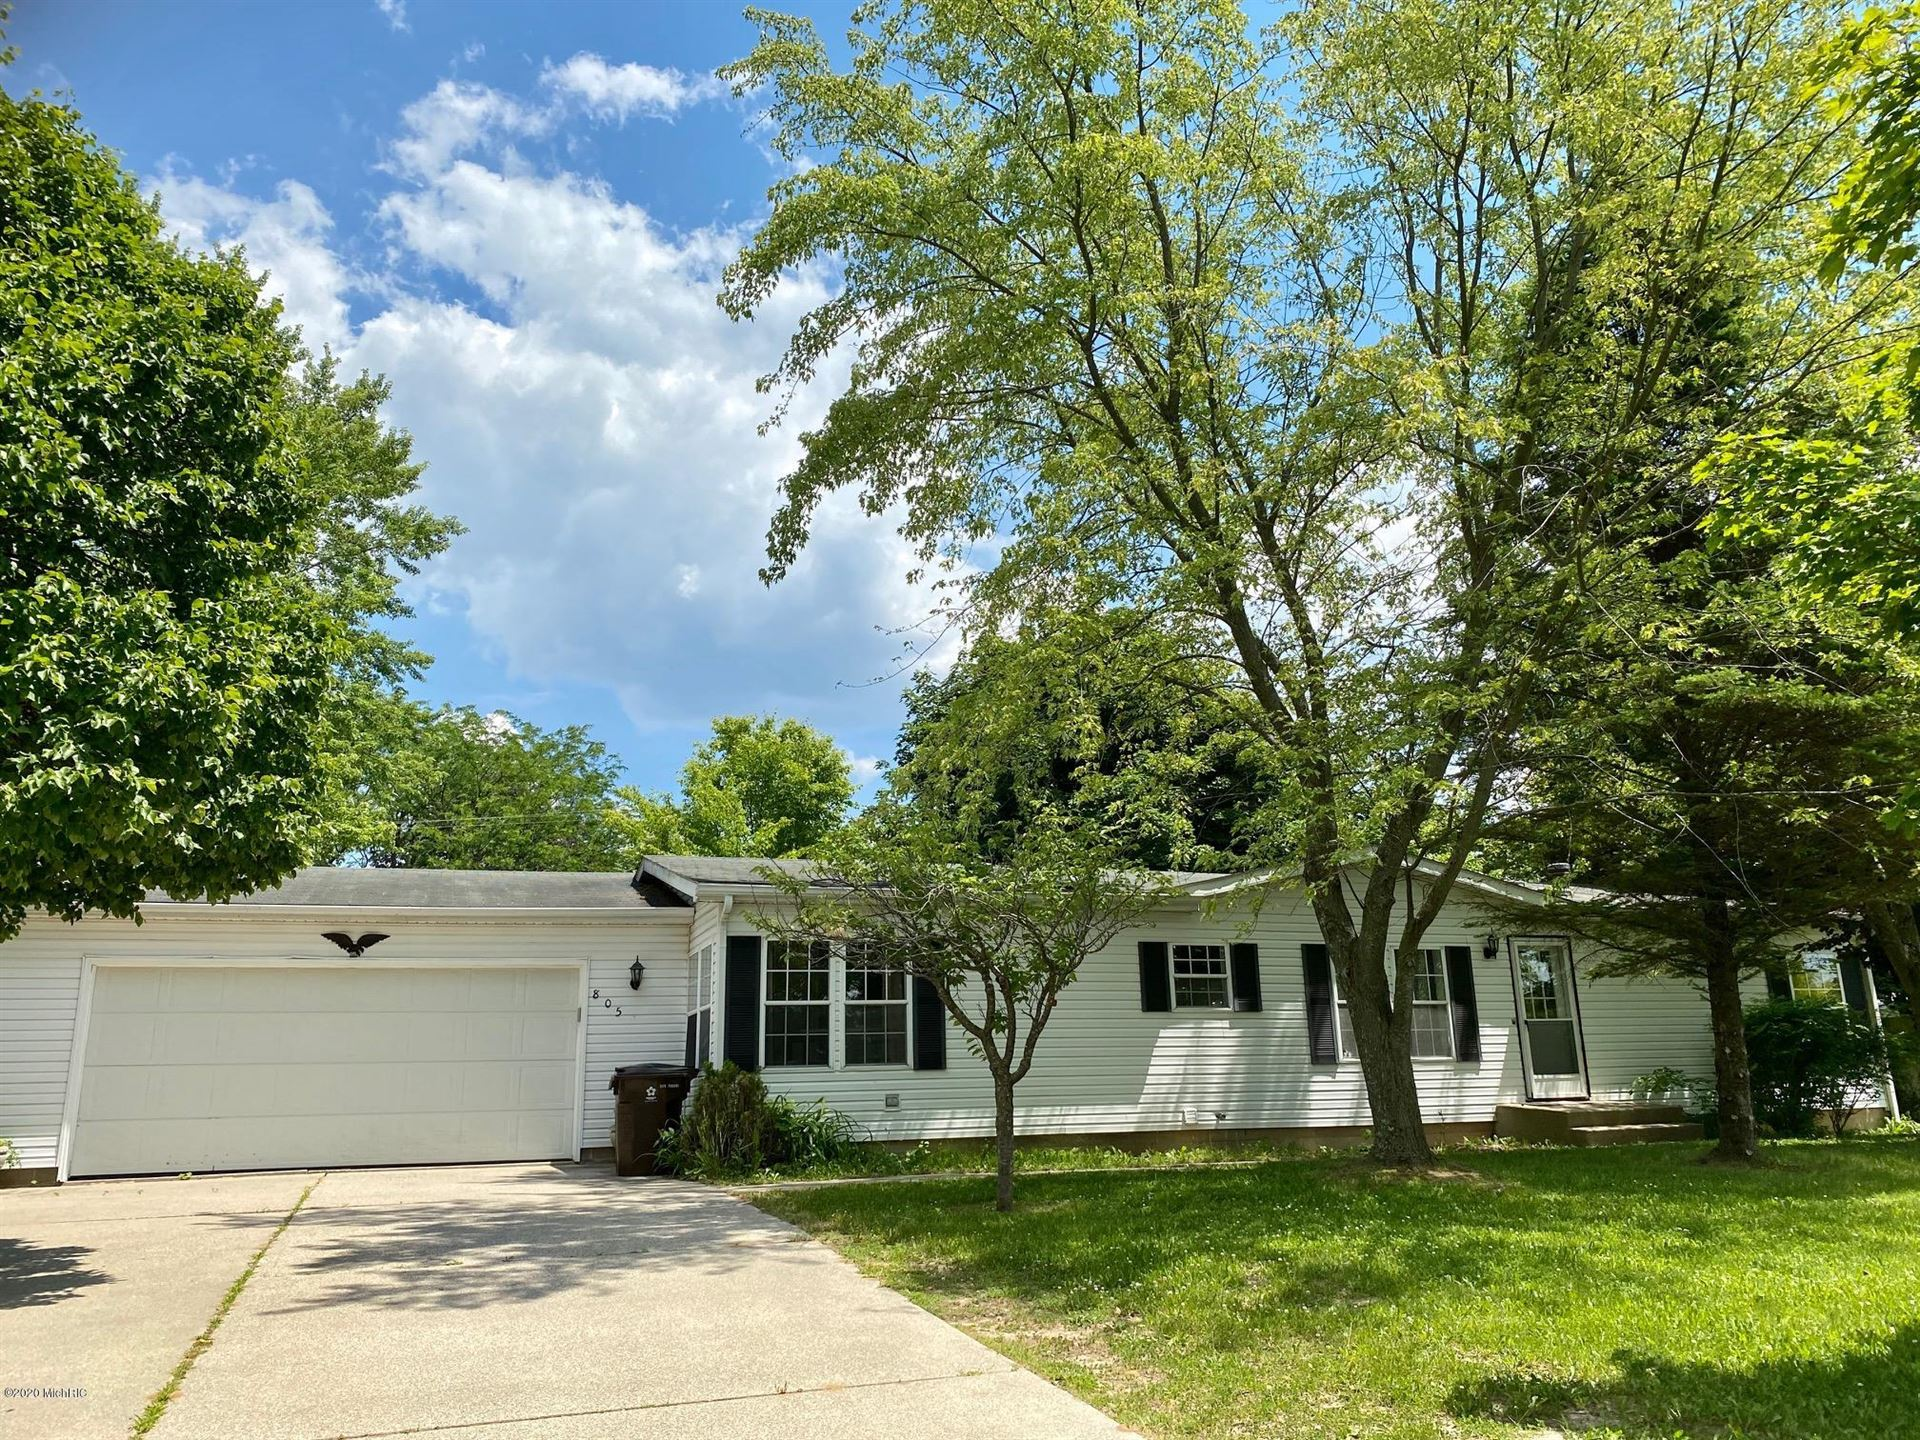 805 Ives Avenue, Big Rapids, MI 49307 - #: 19058277